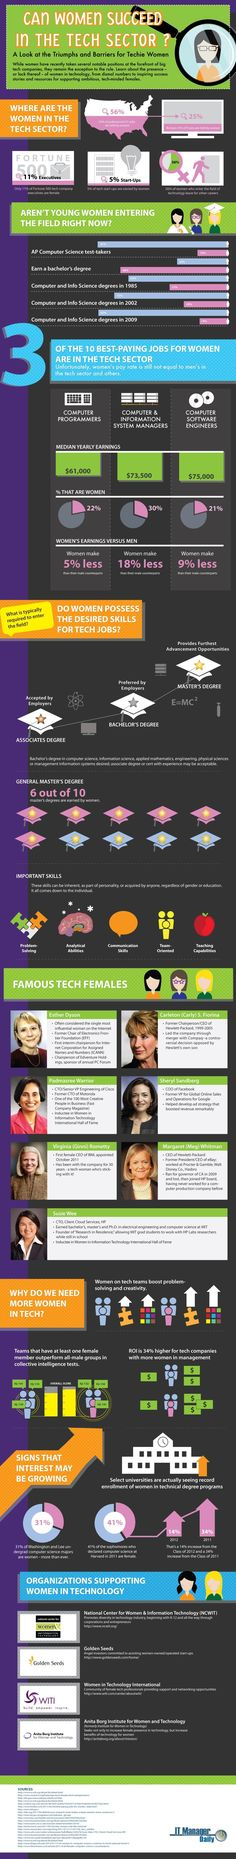 Can Women succeed in the technology sector. #infographic